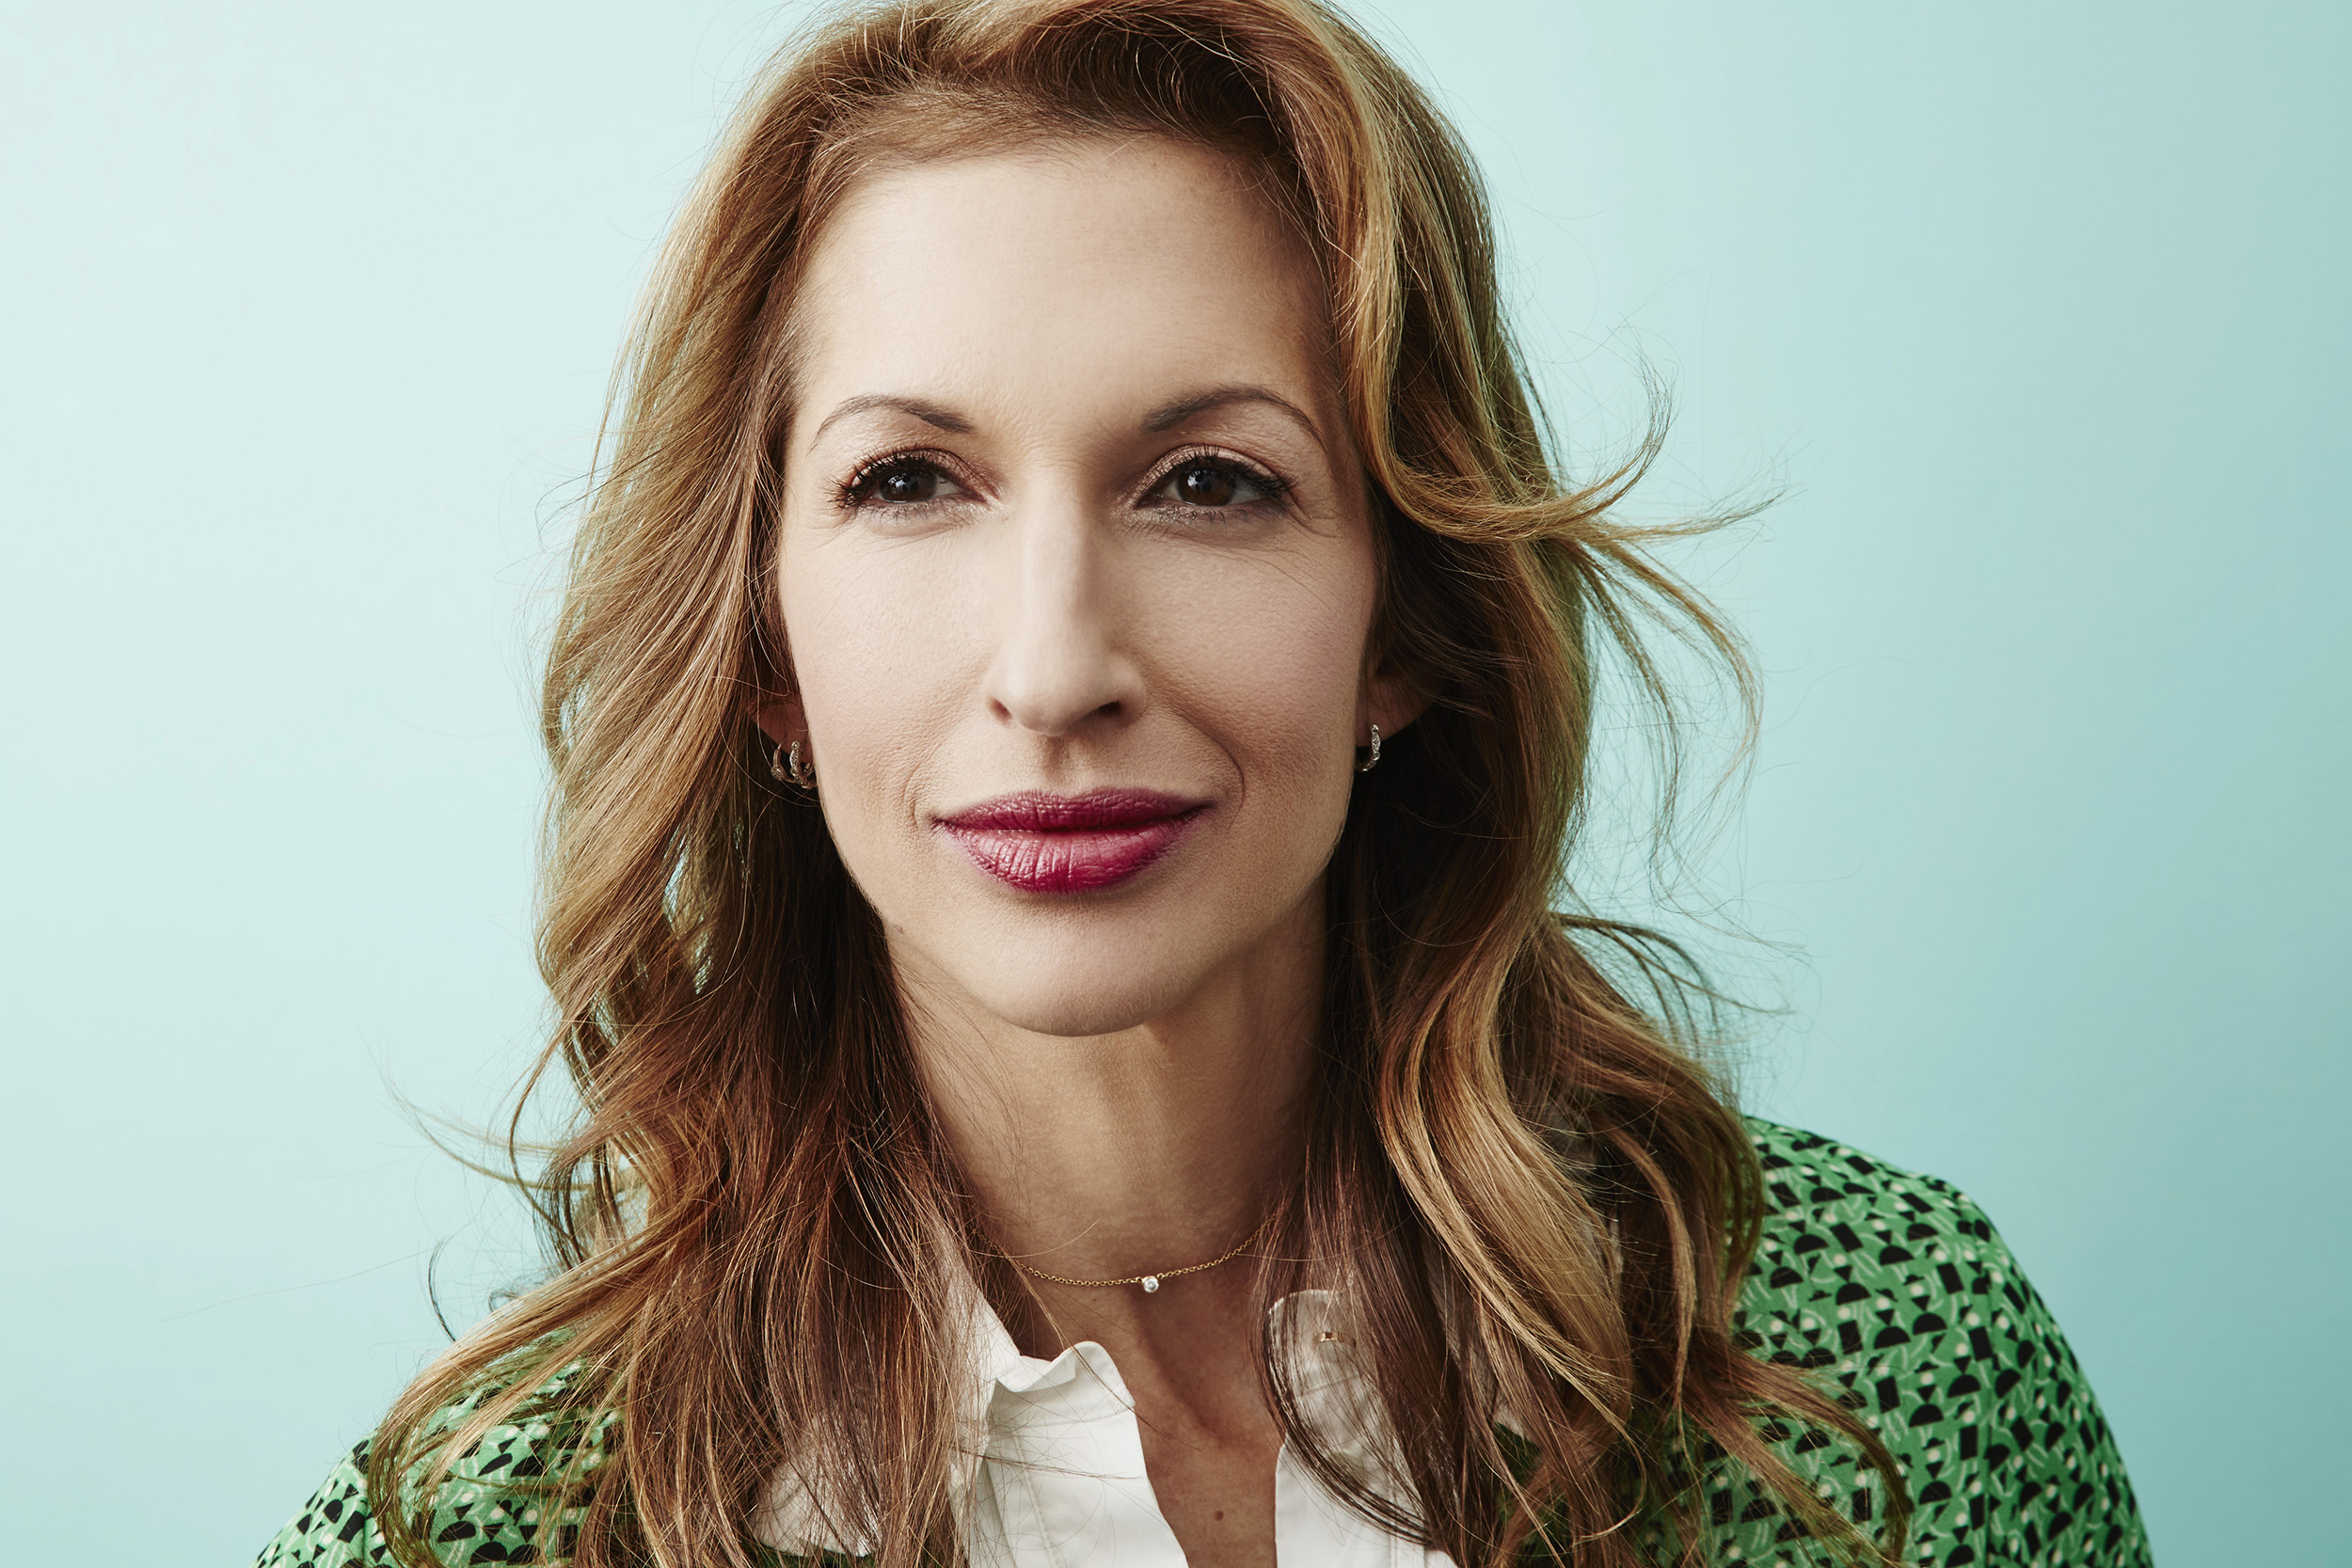 Alysia Reiner of 'Equity' poses at the 2016 Sundance Film Festival Getty Images Portrait Studio in Park City, Utah on Jan. 25, 2016.